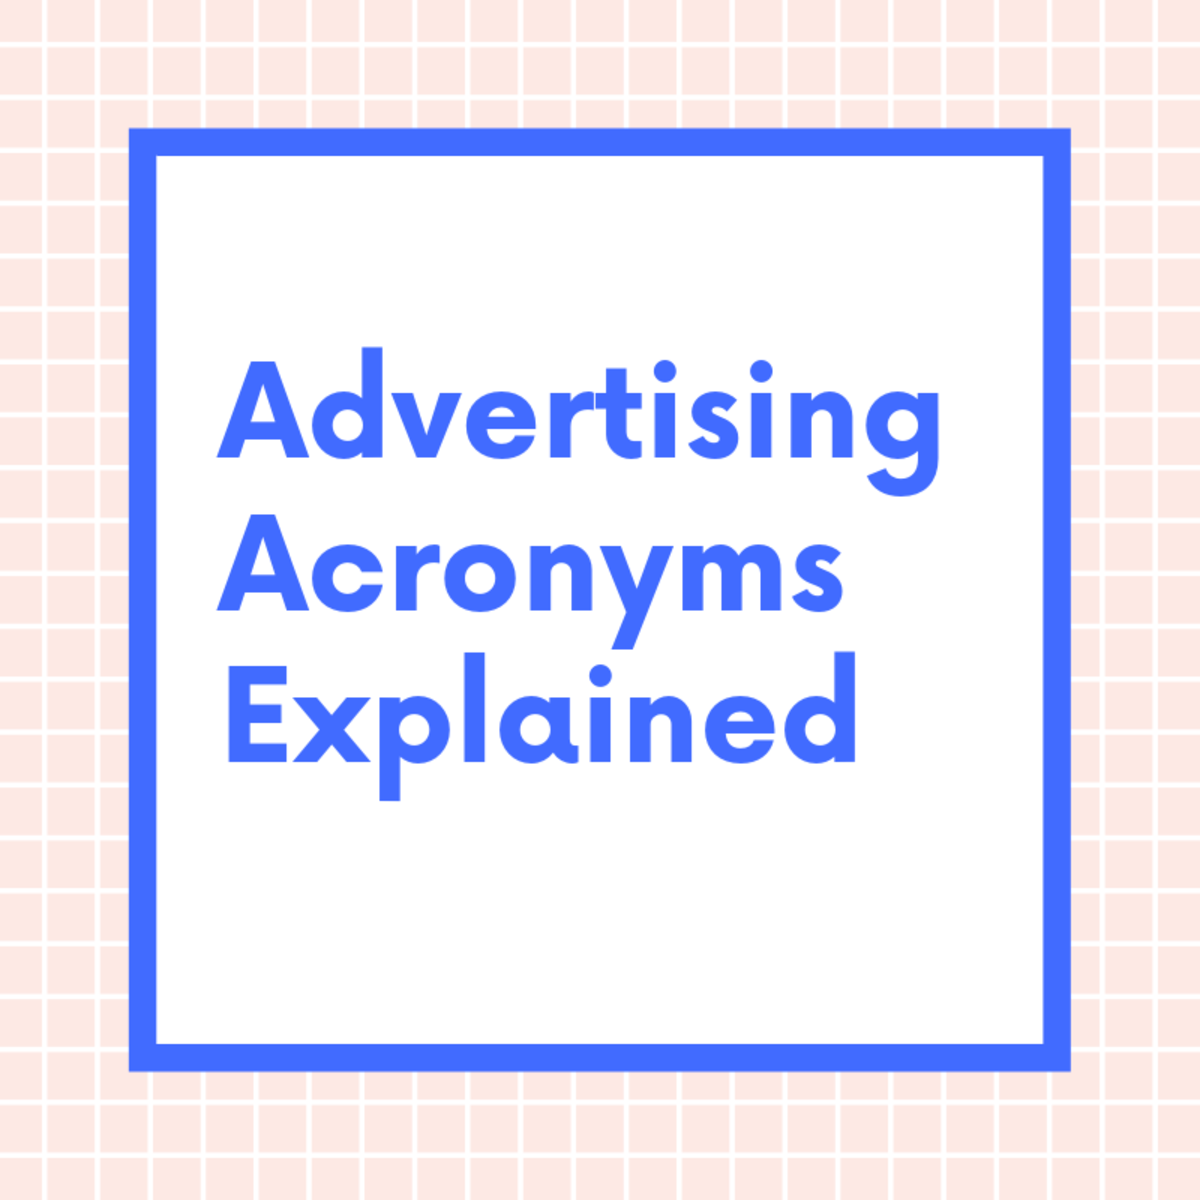 Advertising Acronyms Explained